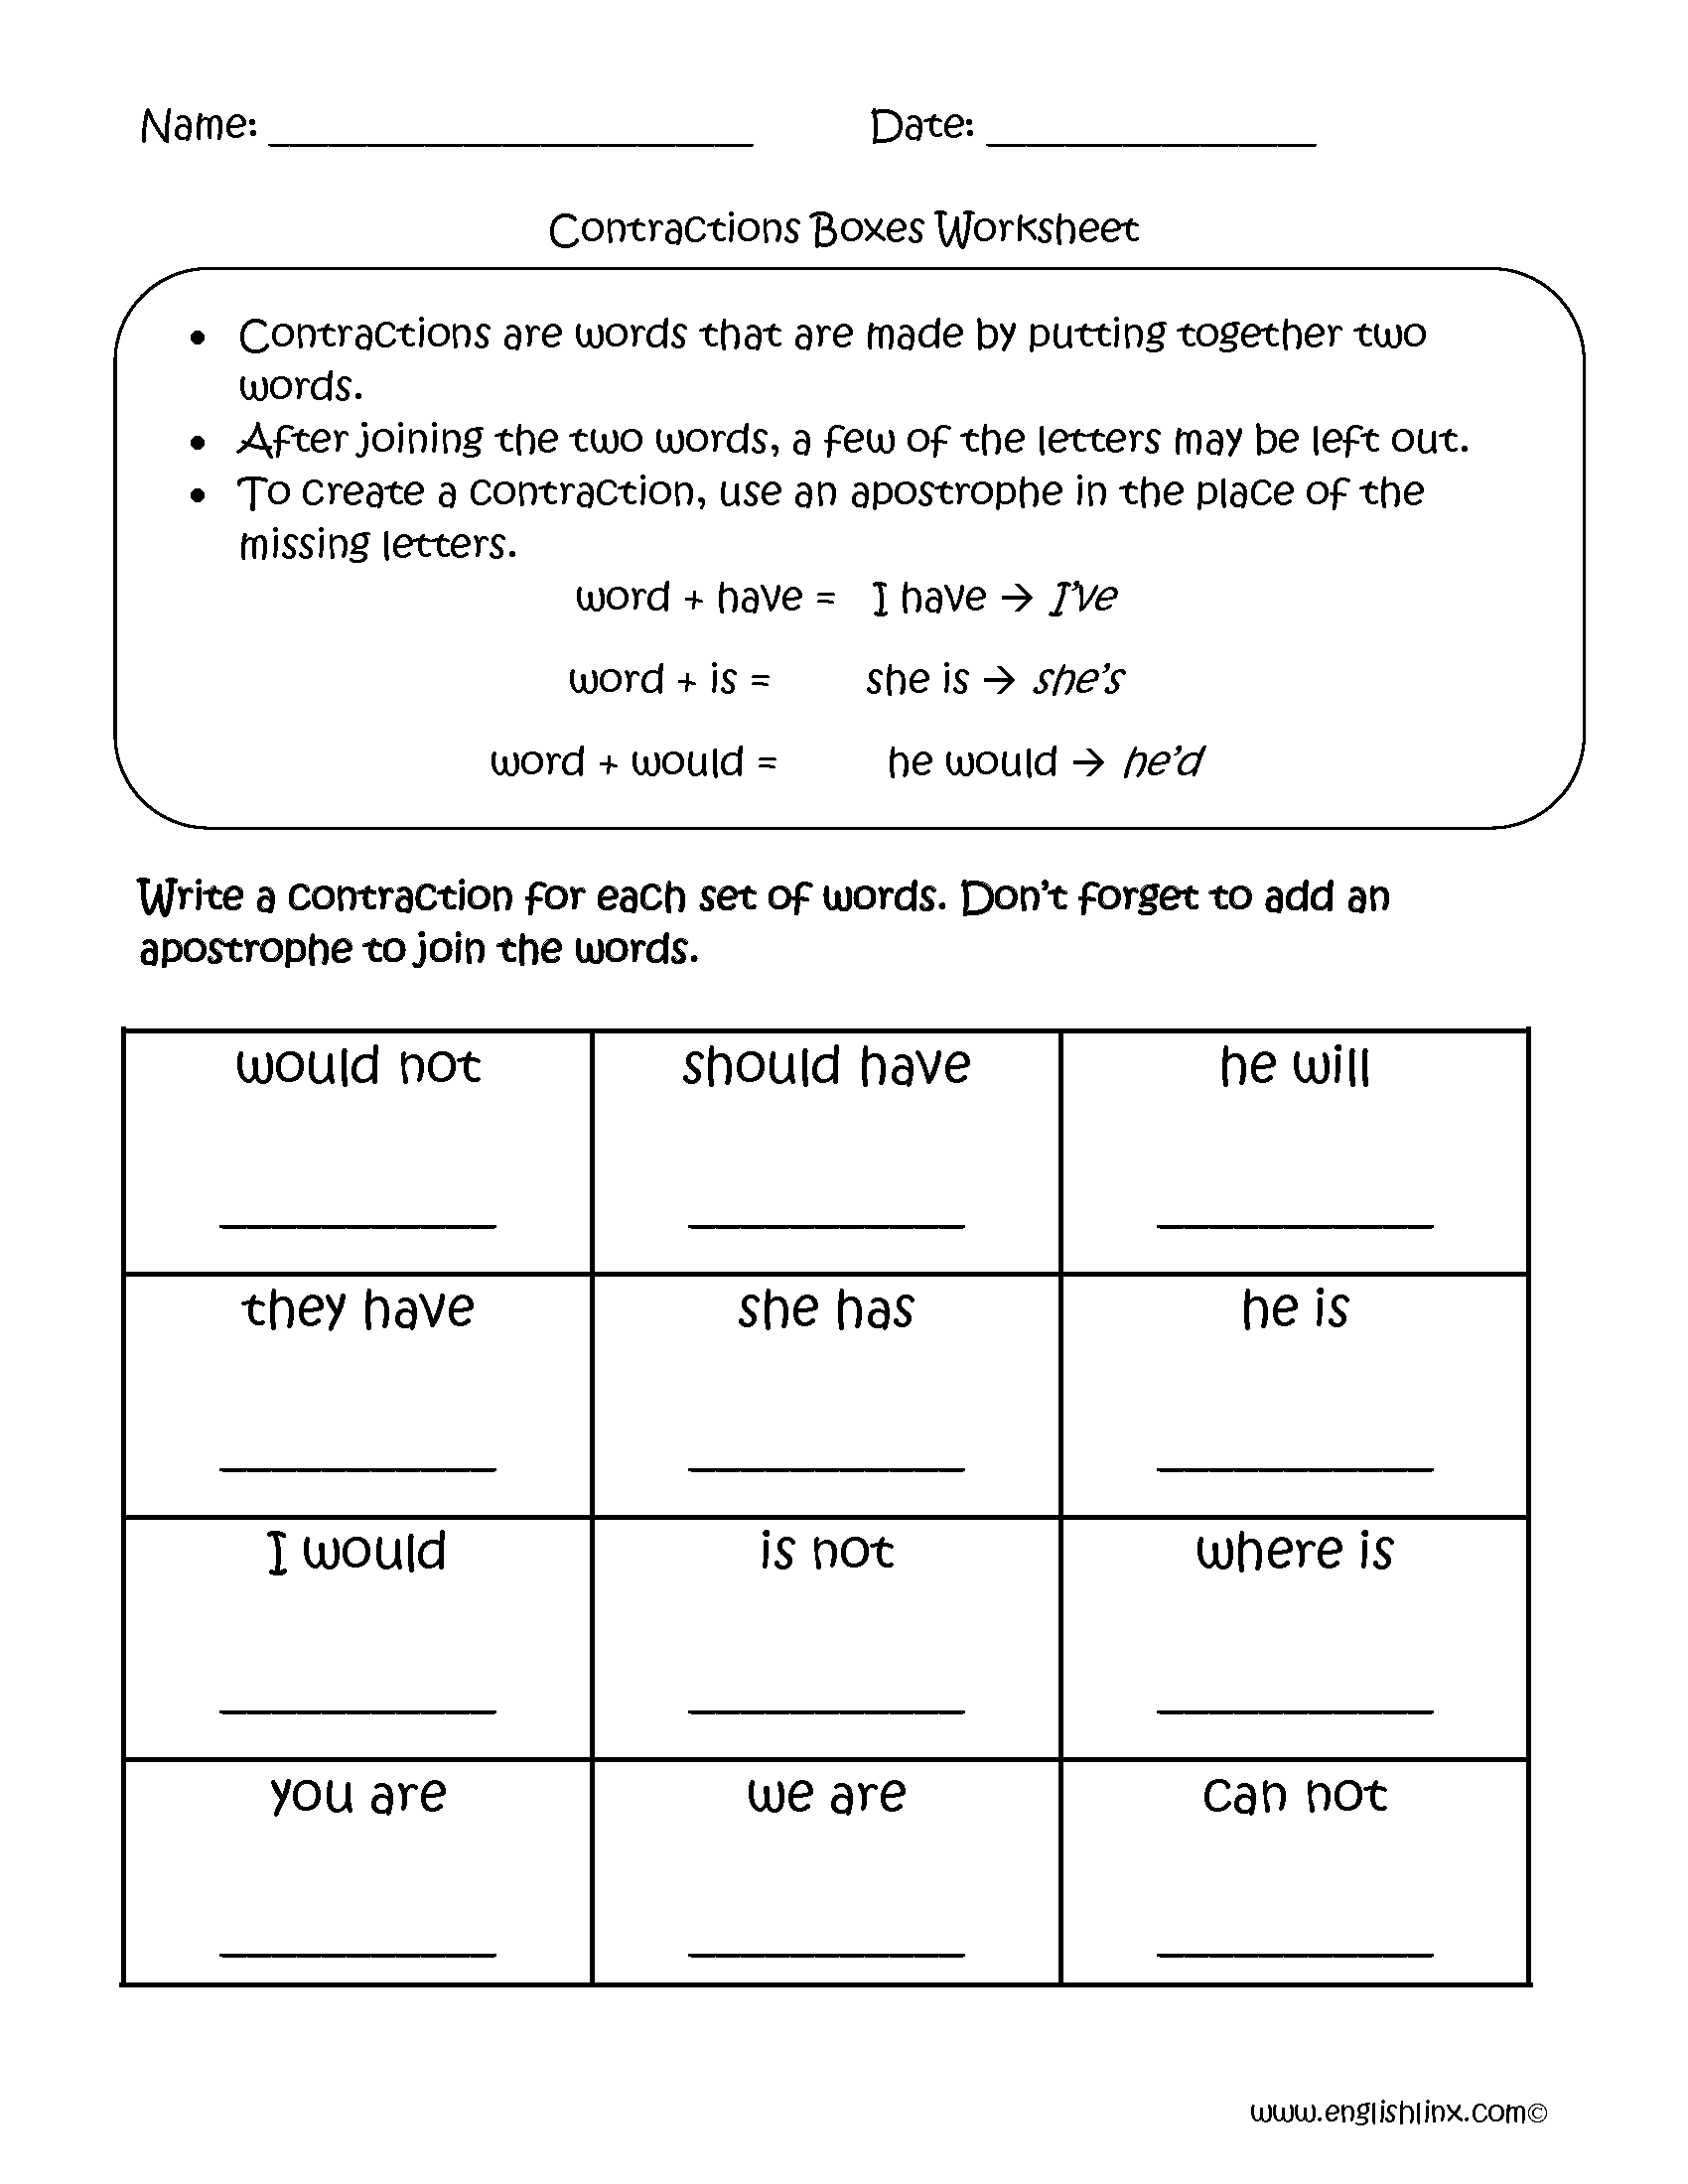 Worksheets Contractions Grammar Worksheets englishlinx com contractions worksheets boxes worksheets